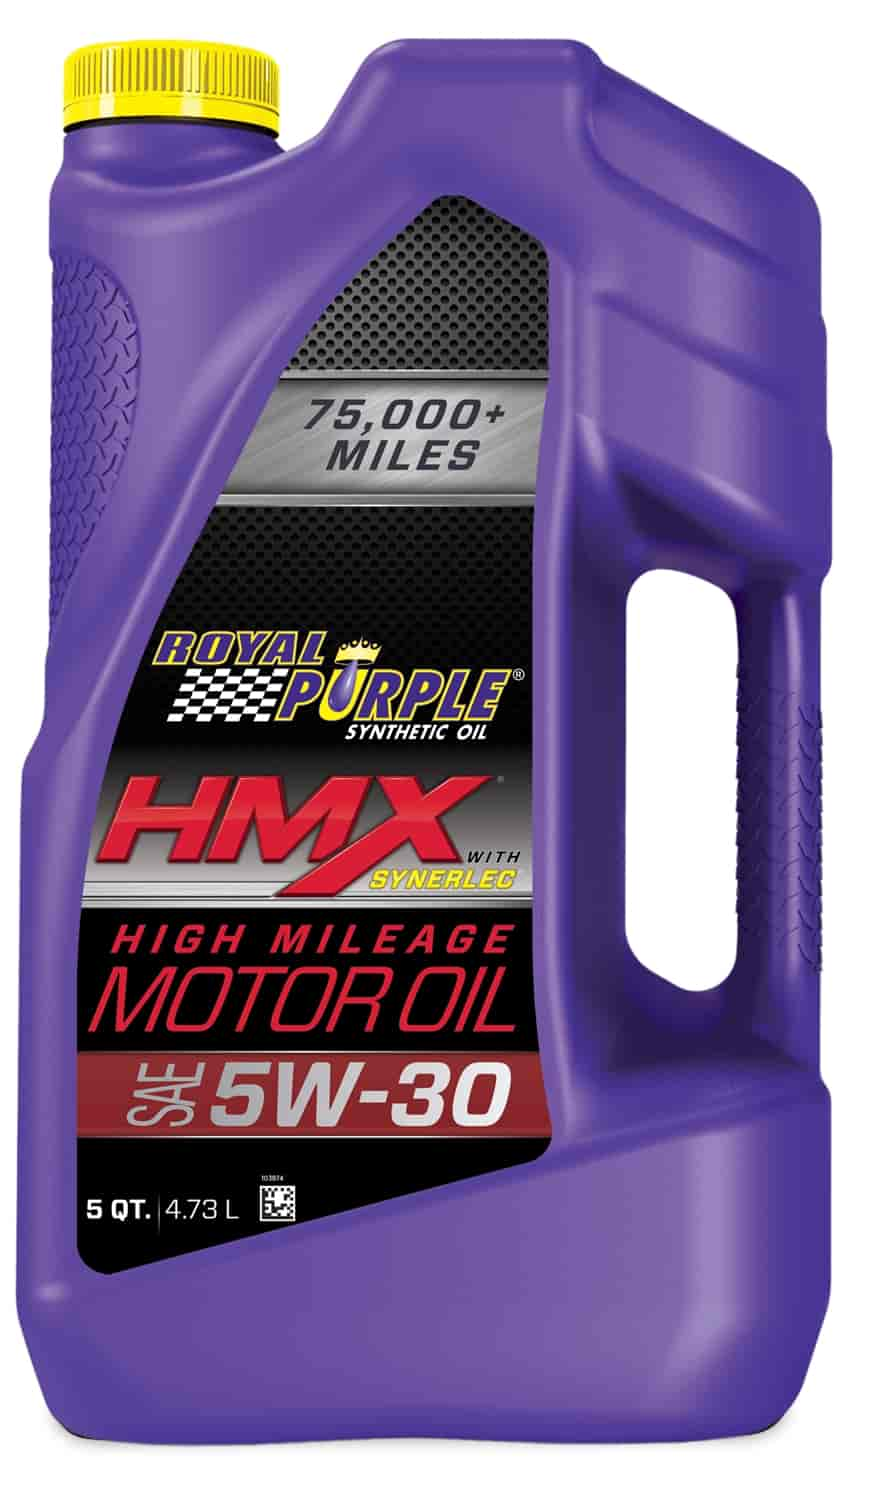 royal purple 11748 hmx high mileage synthetic motor oil 5w30. Black Bedroom Furniture Sets. Home Design Ideas